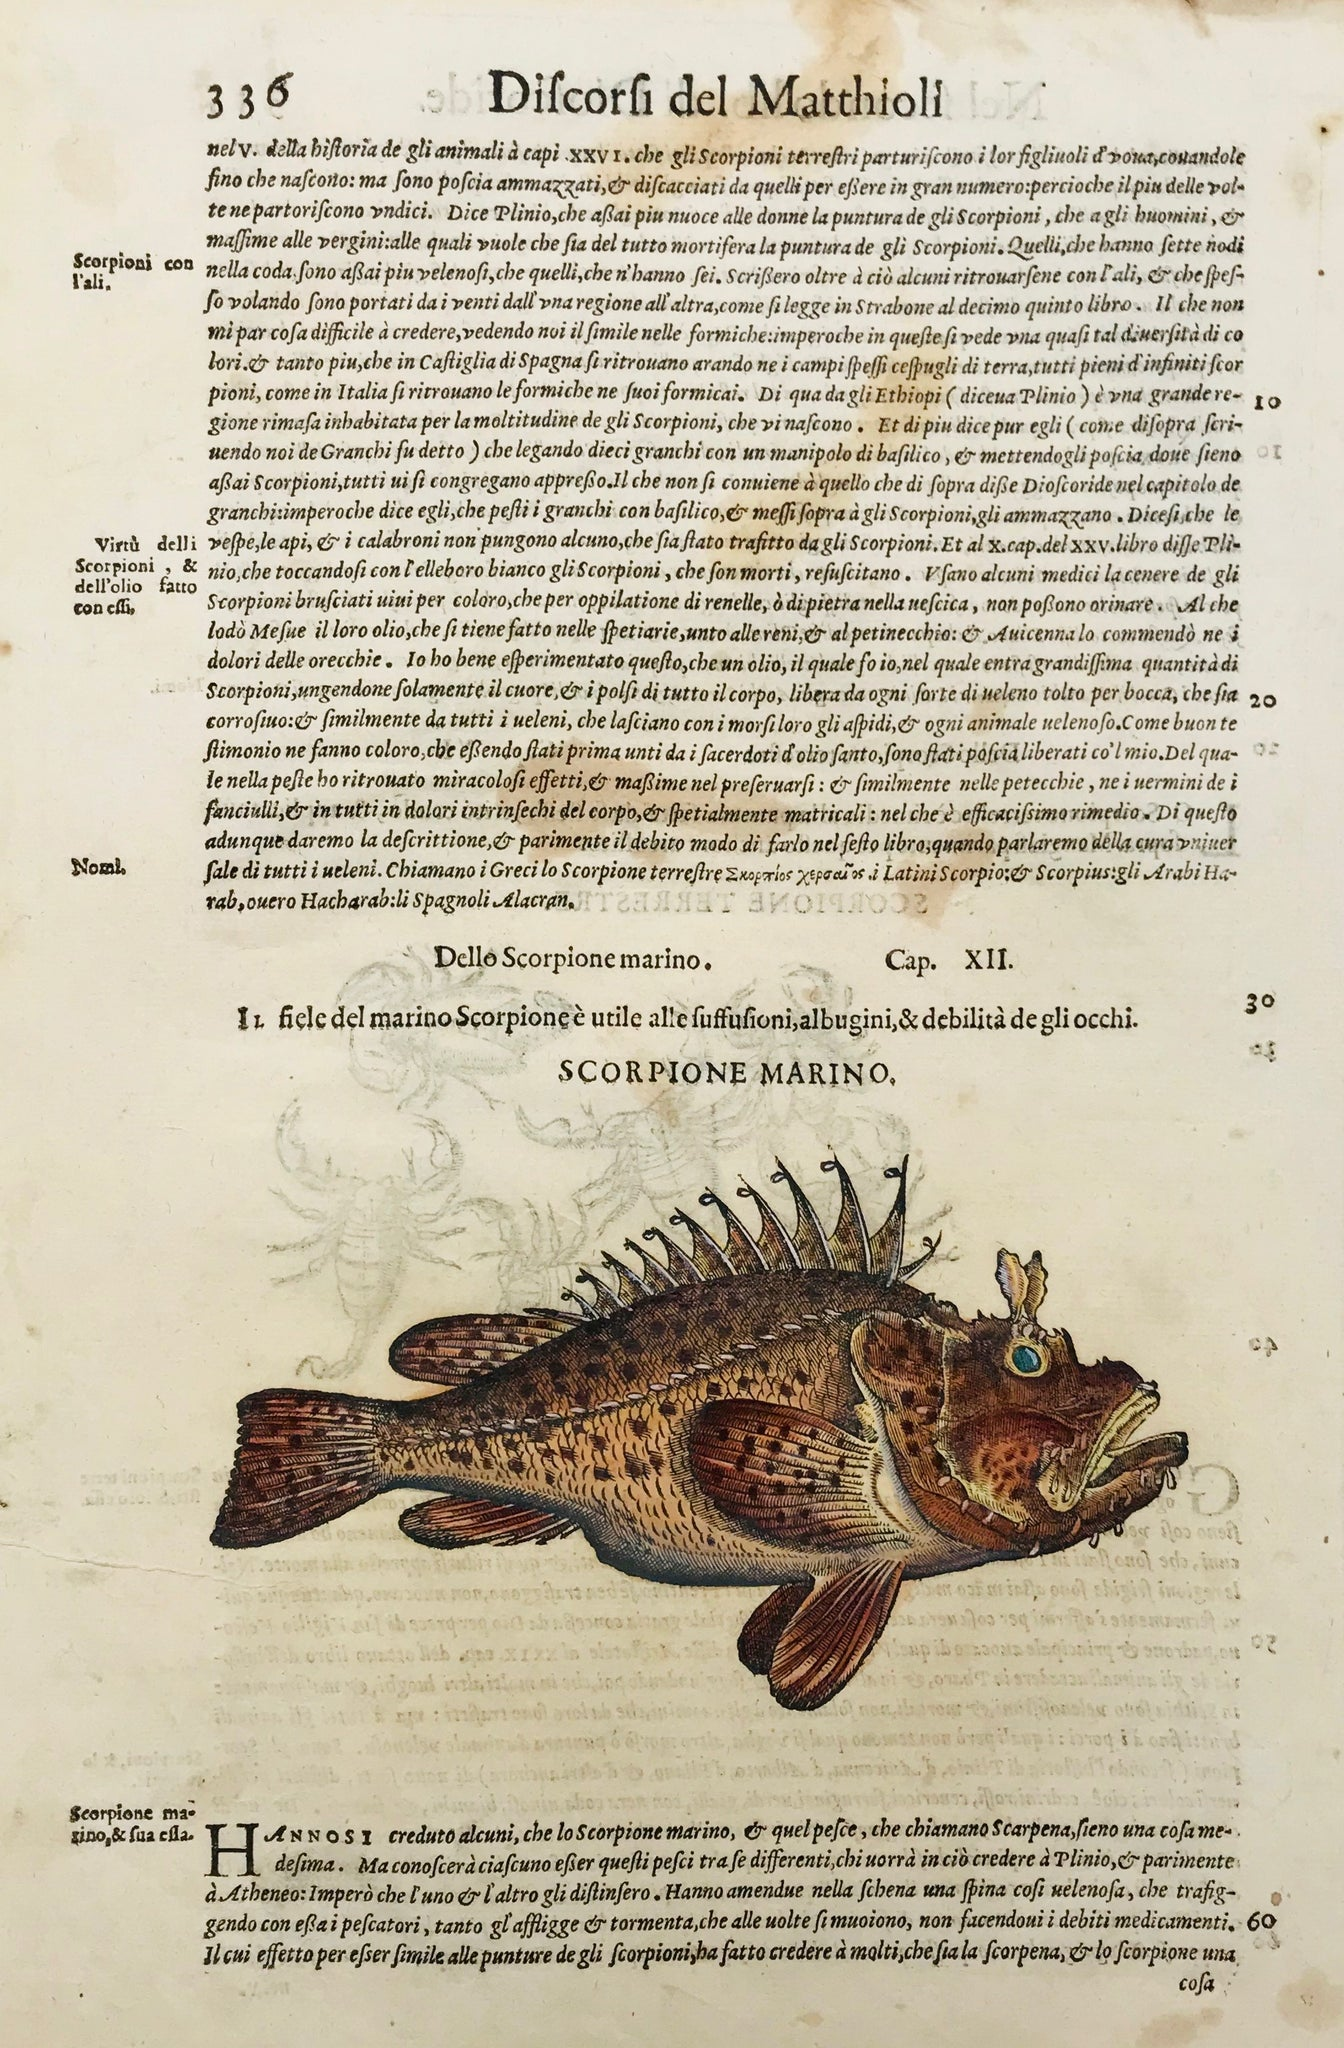 Scorpione Marino (Type of Stone fish)  Drago Marino (Stone Fish)  Woodcut by Pietro Andrea Mattioli (1500-1577). Published 1571. Reverse side is printed with an image of land scorpions plus text in Italian.